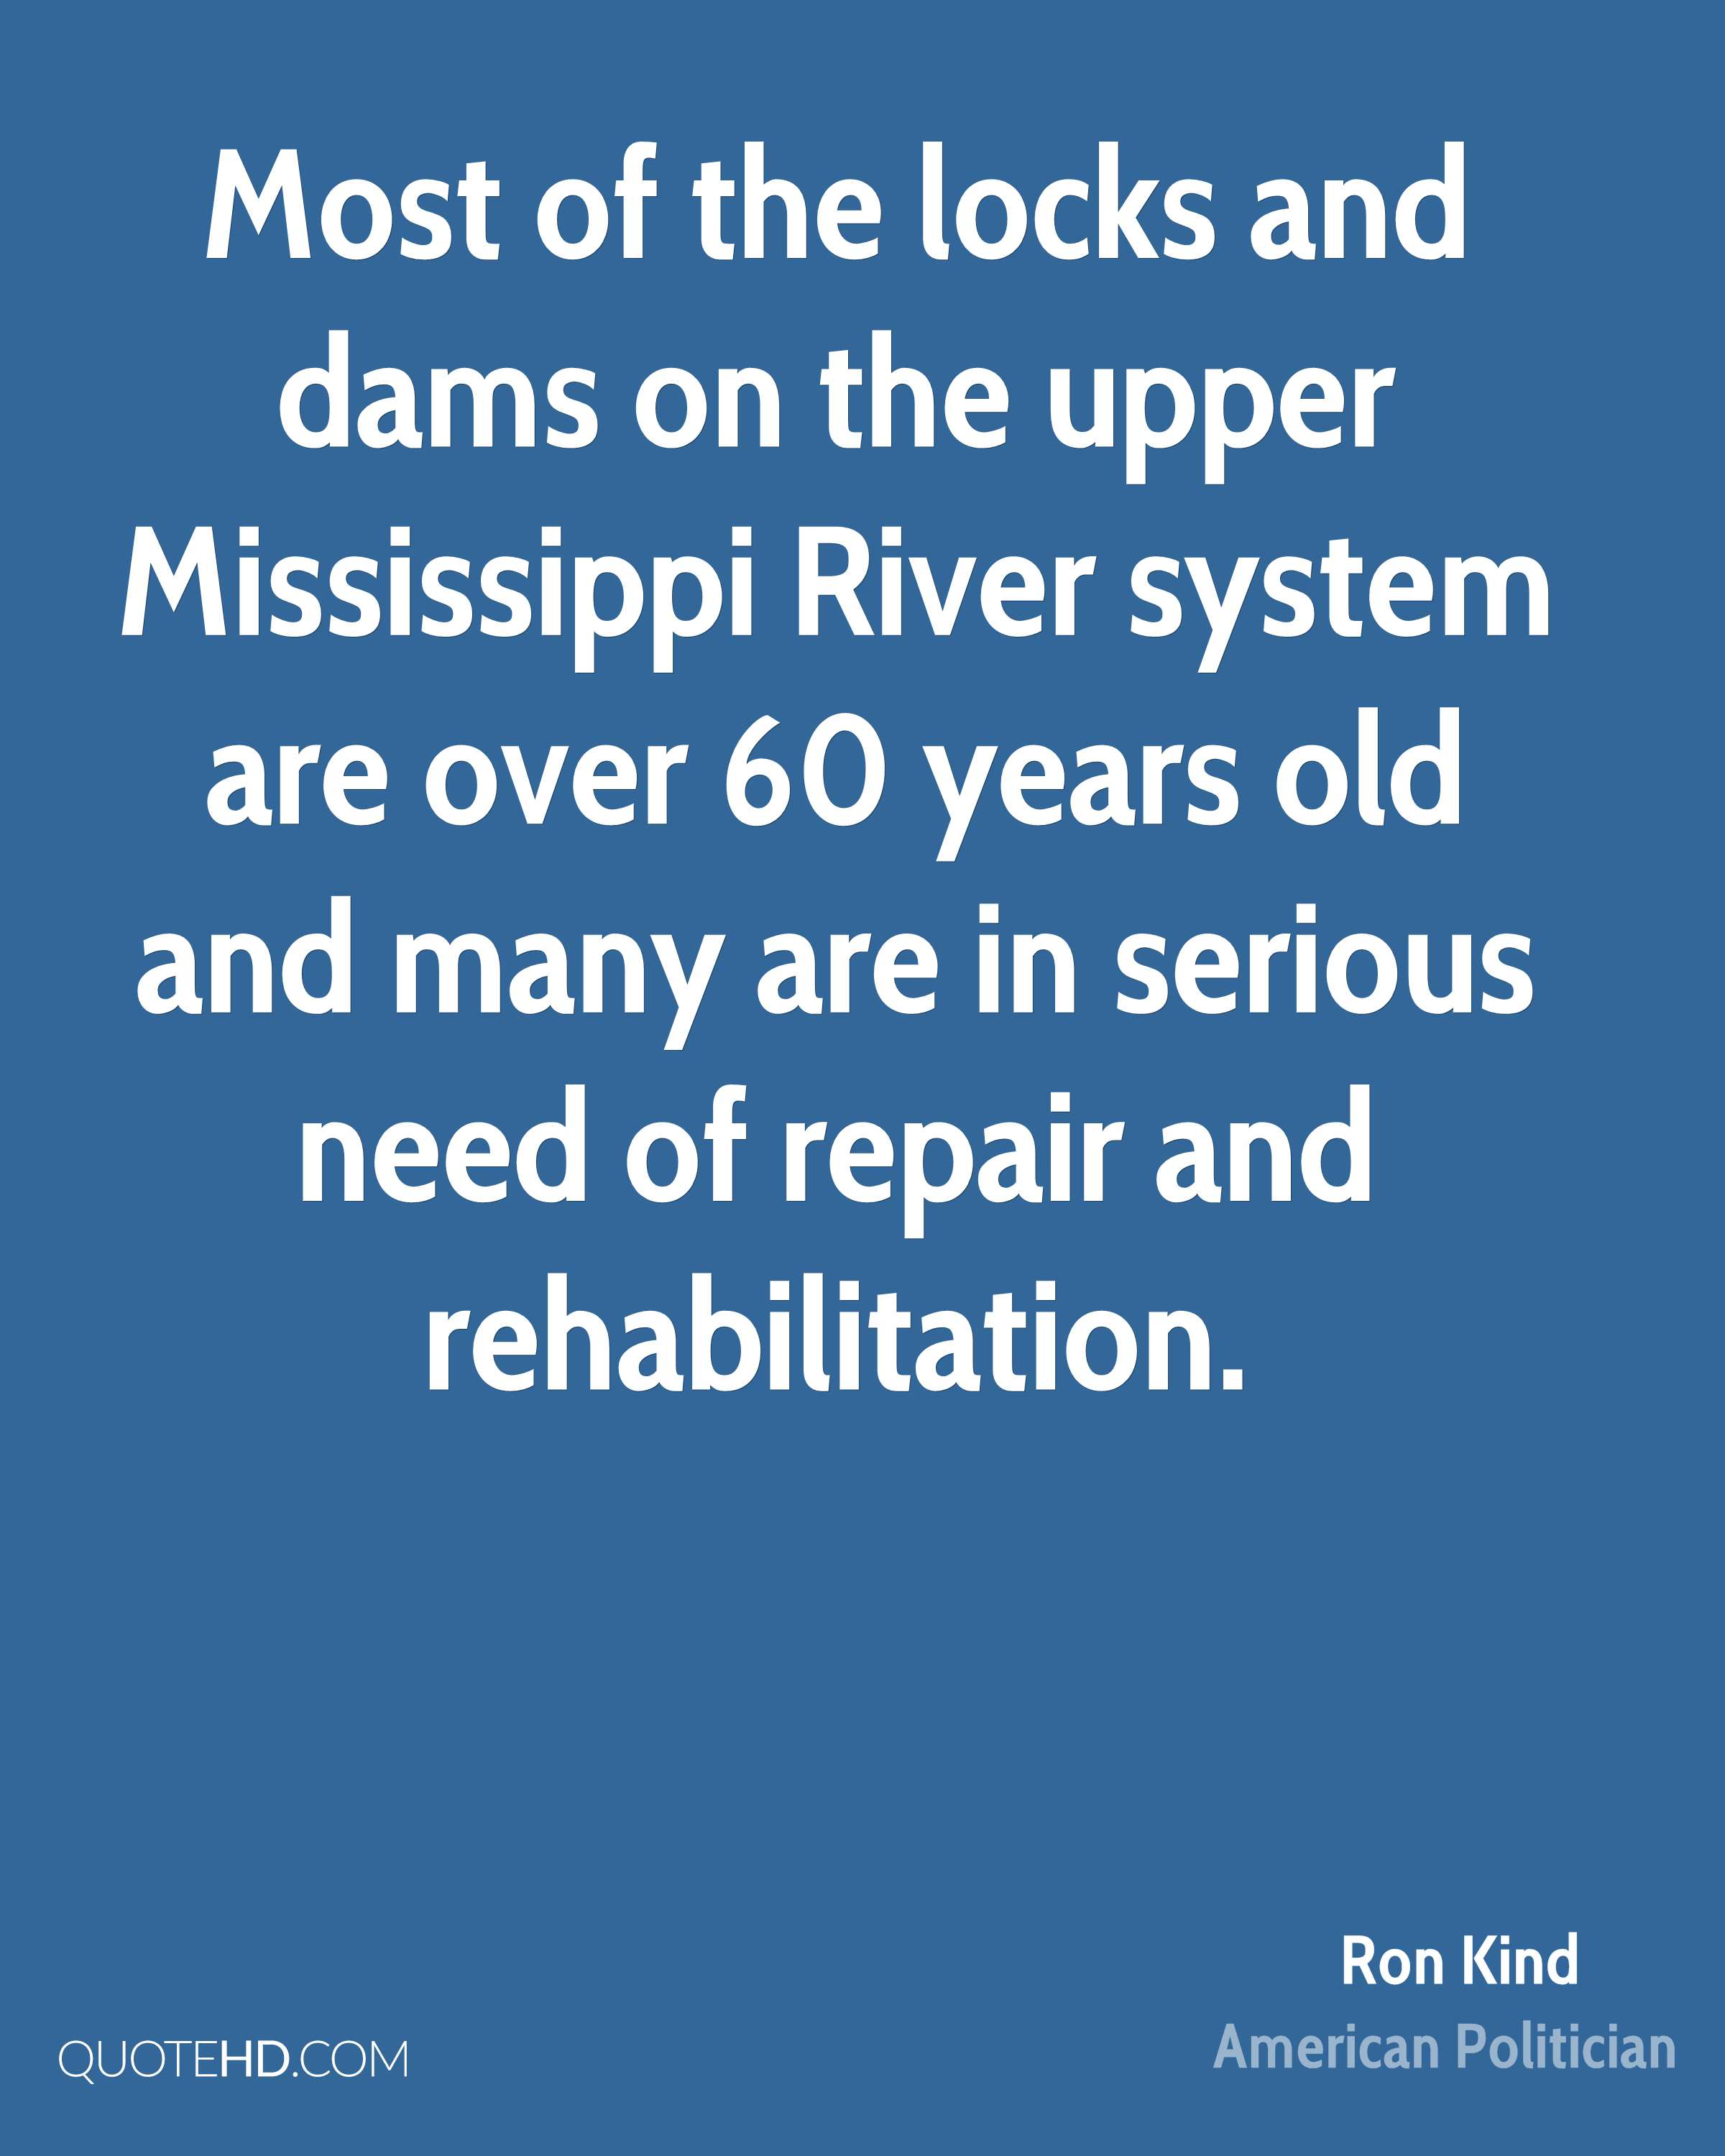 Most of the locks and dams on the upper Mississippi River system are over 60 years old and many are in serious need of repair and rehabilitation.